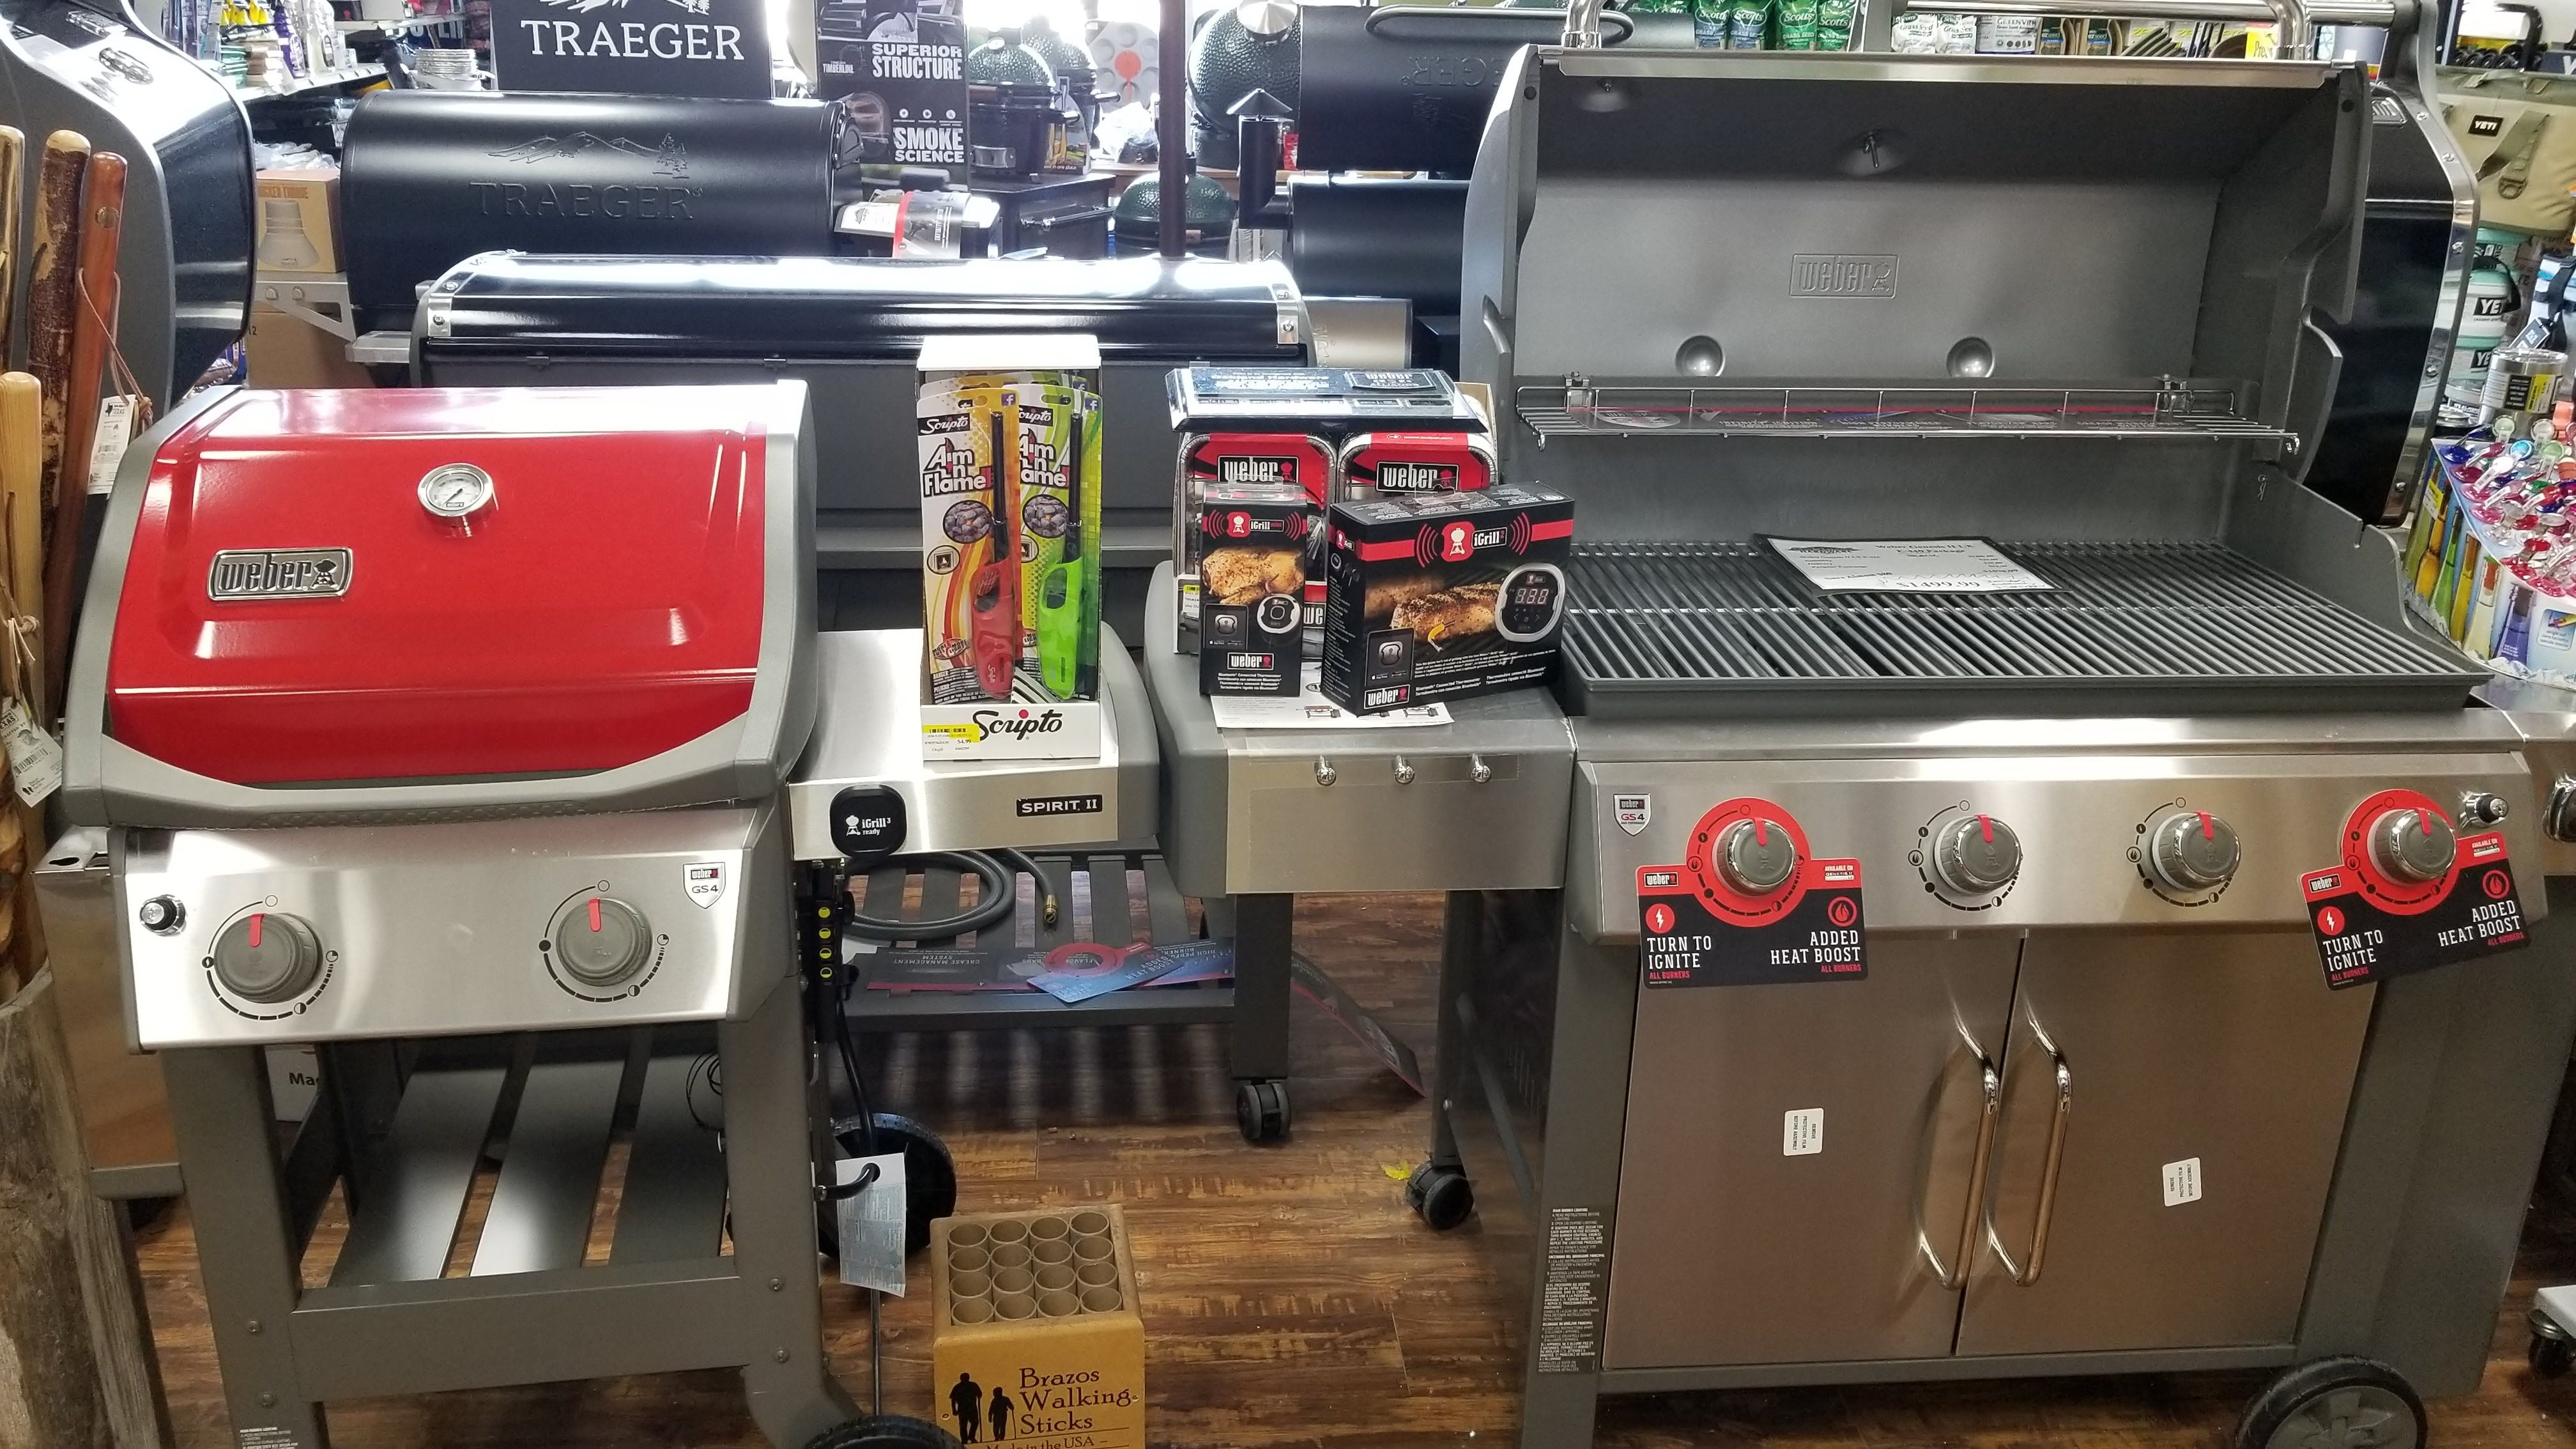 We Ve Got All The Latest Models From Webergrills Stop In Today Remember At Oakland Hardware We Offer Free Assembly Deliver Weber Grill Grilling Hardware